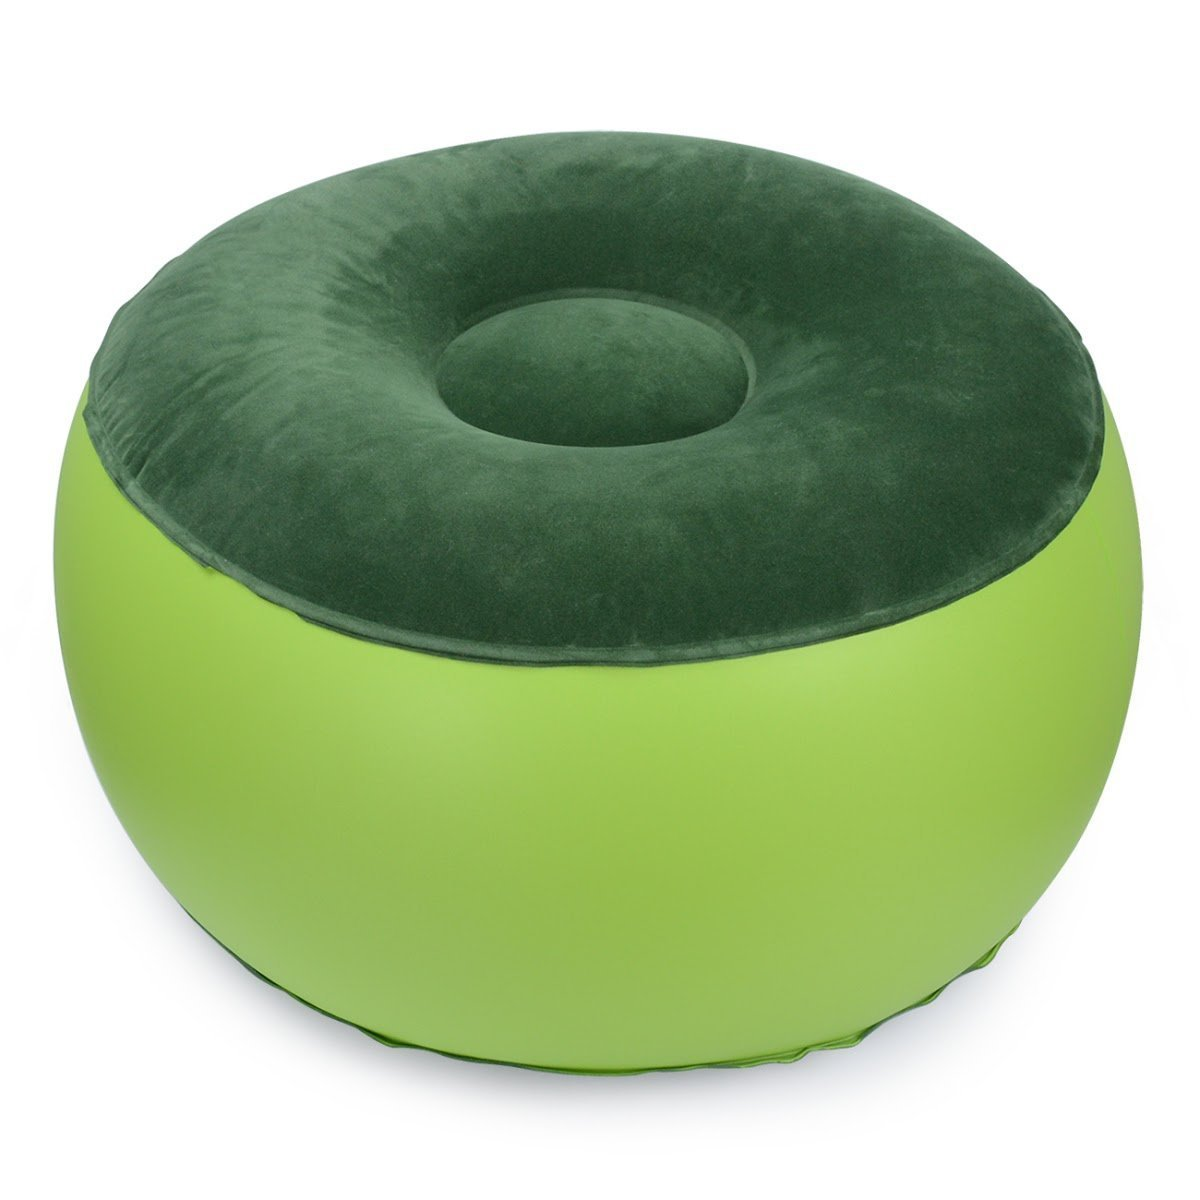 Air Chair Durable Balance Portable Outdoor Camping Chair Inflatable Stool footrest Cushion For Home Office Yoga(Green) Chuangbo